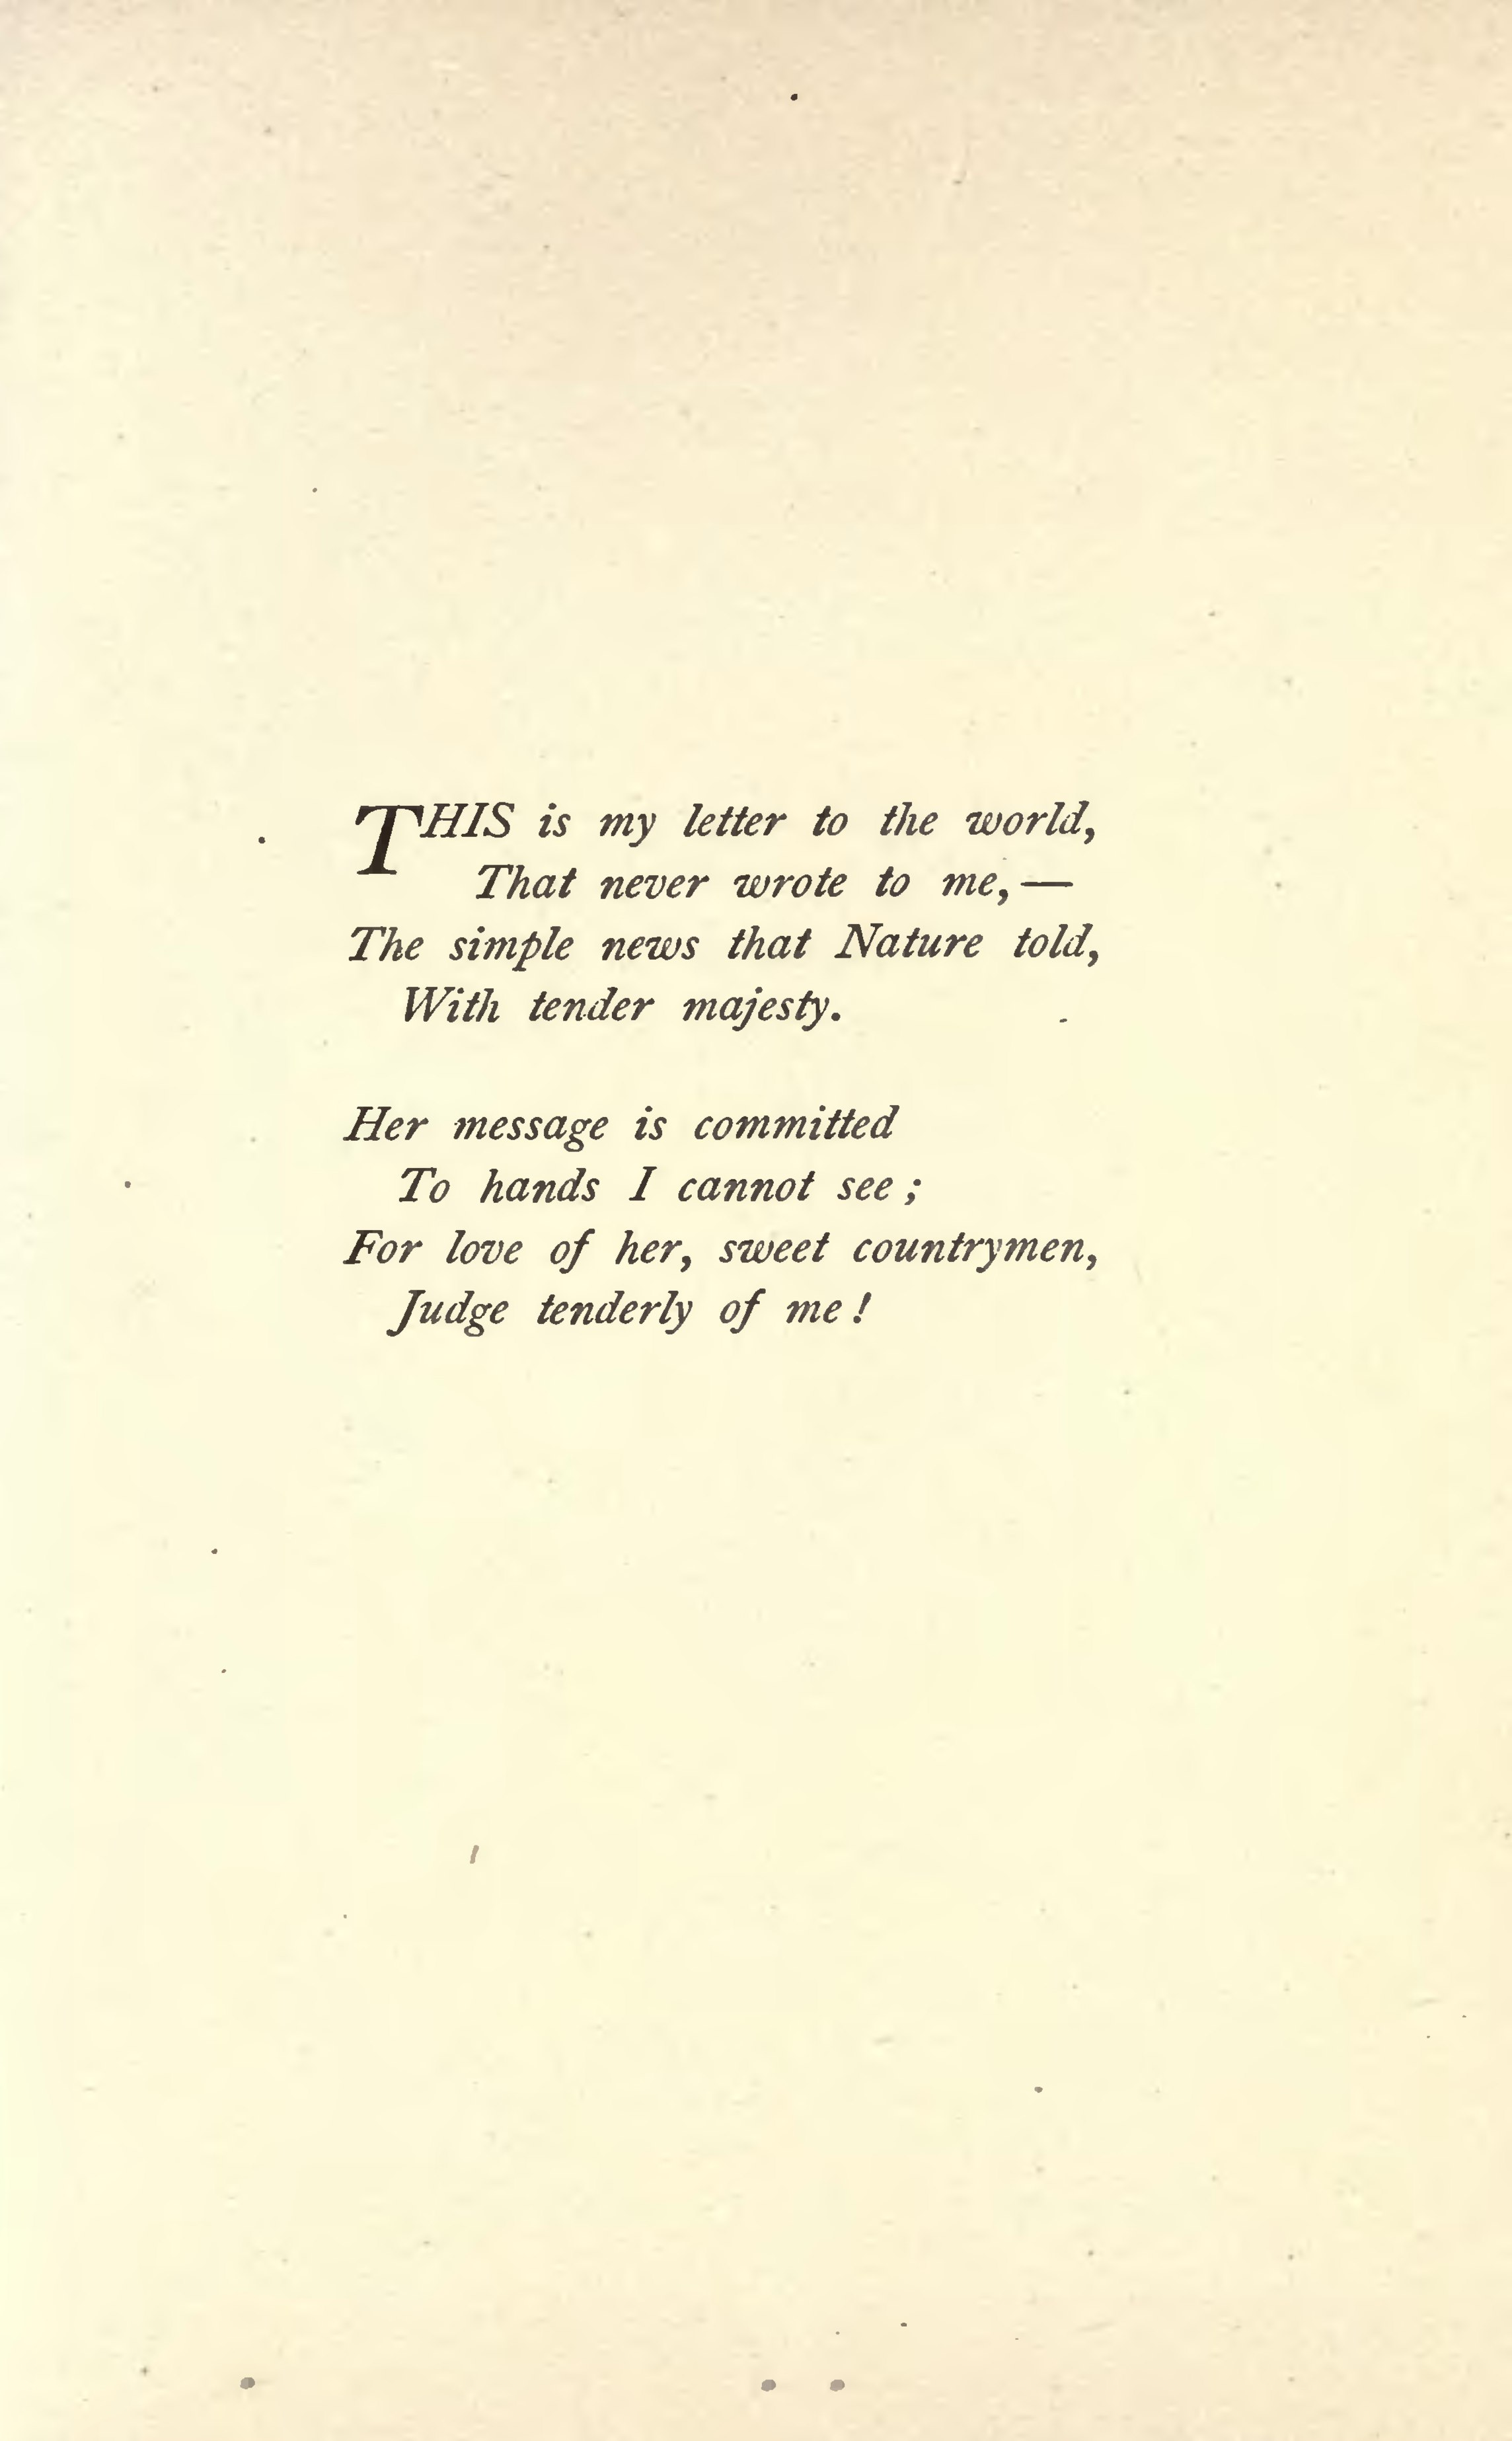 Page Emily Dickinson Poems 1890 vu 17 Wikisource the free